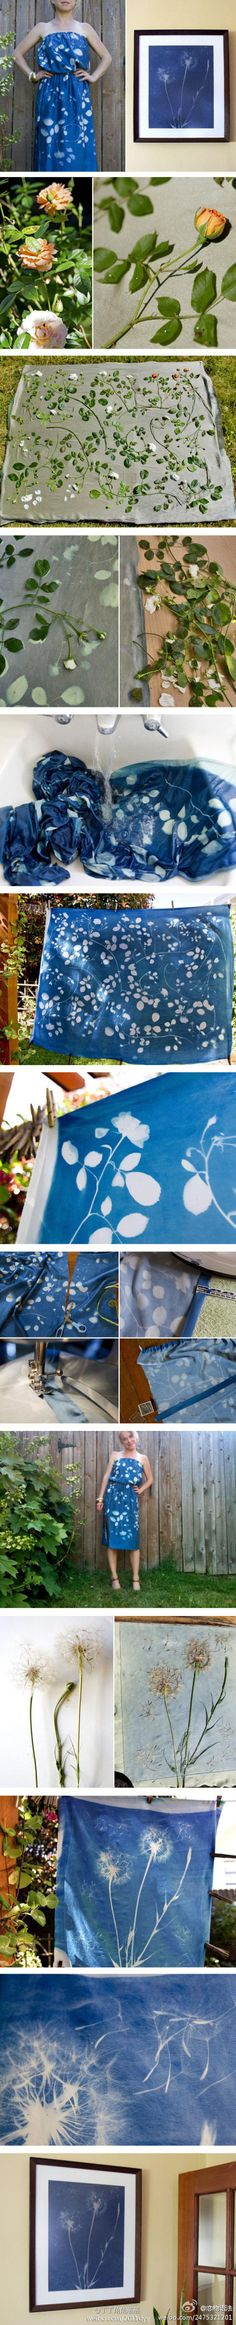 DIY Sun Printing on Fabric